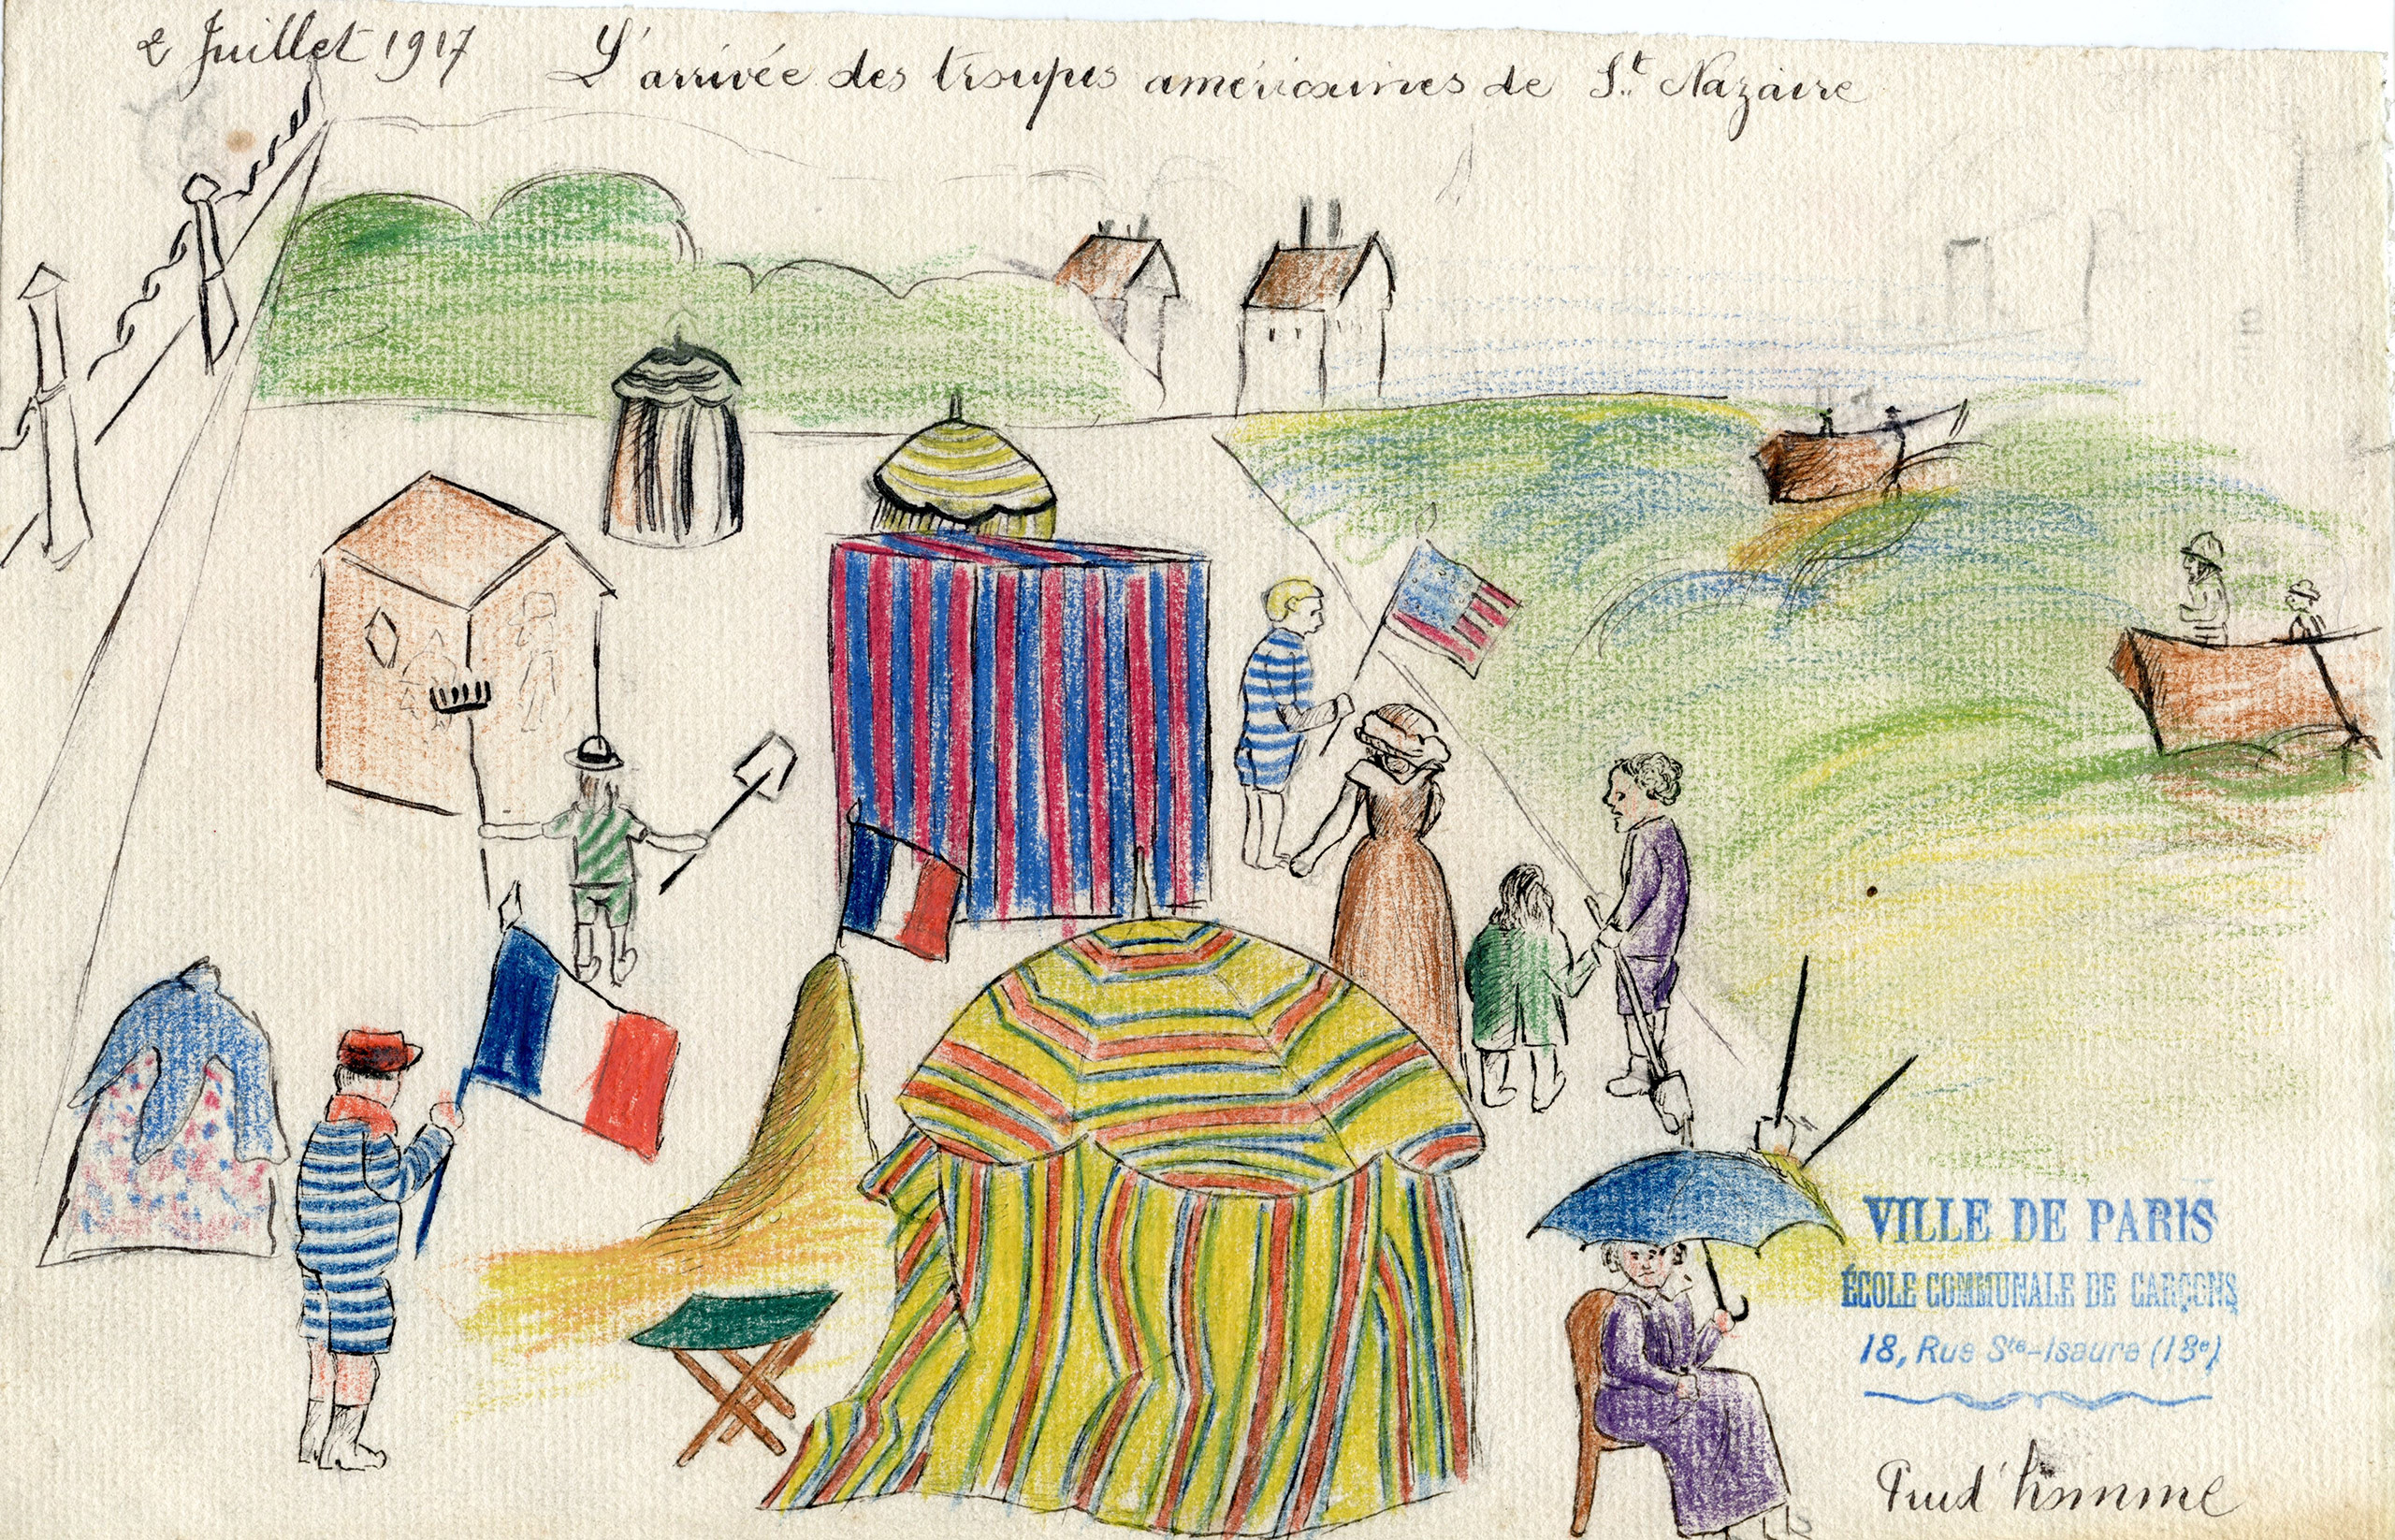 The arrival of American troops was met with great anticipation and fanfare by the French. In this drawing, brightly colored tents and a smattering of people of all ages wait for the Americans at the seaport of Saint-Nazaire waving the French and American flags as an official welcome to France.